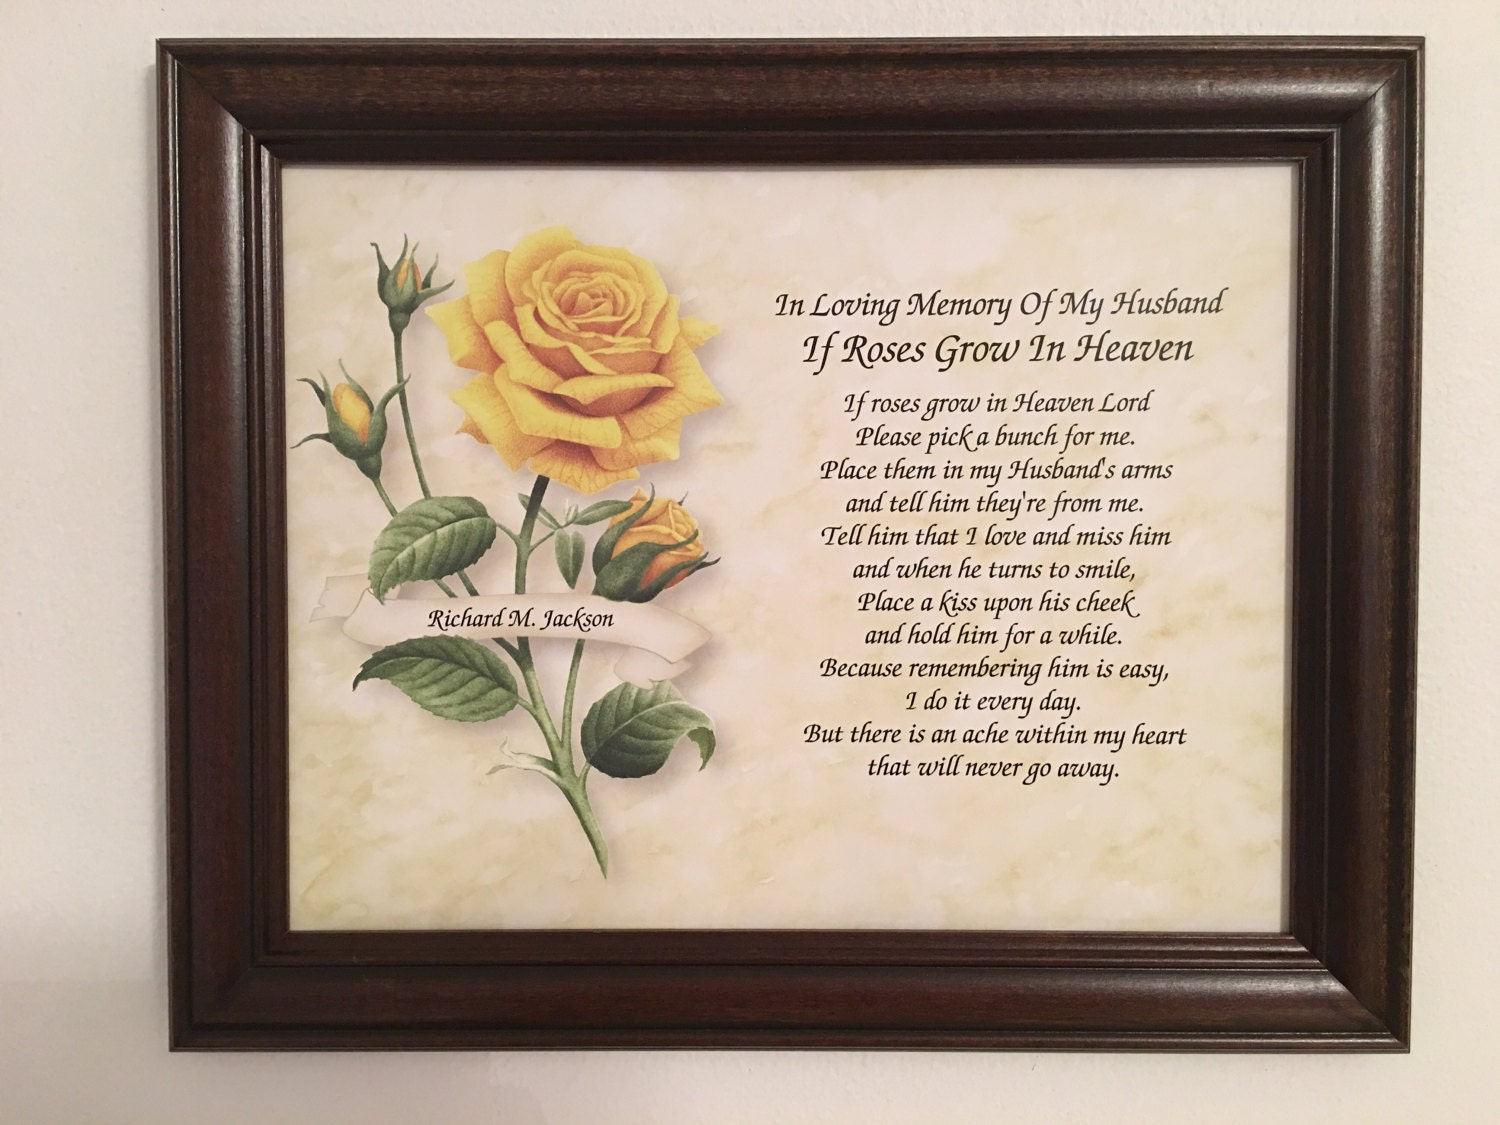 memory of husband sympathy gift roses grow in heaven widow memorial poem frame included bereavement funeral gift personalized